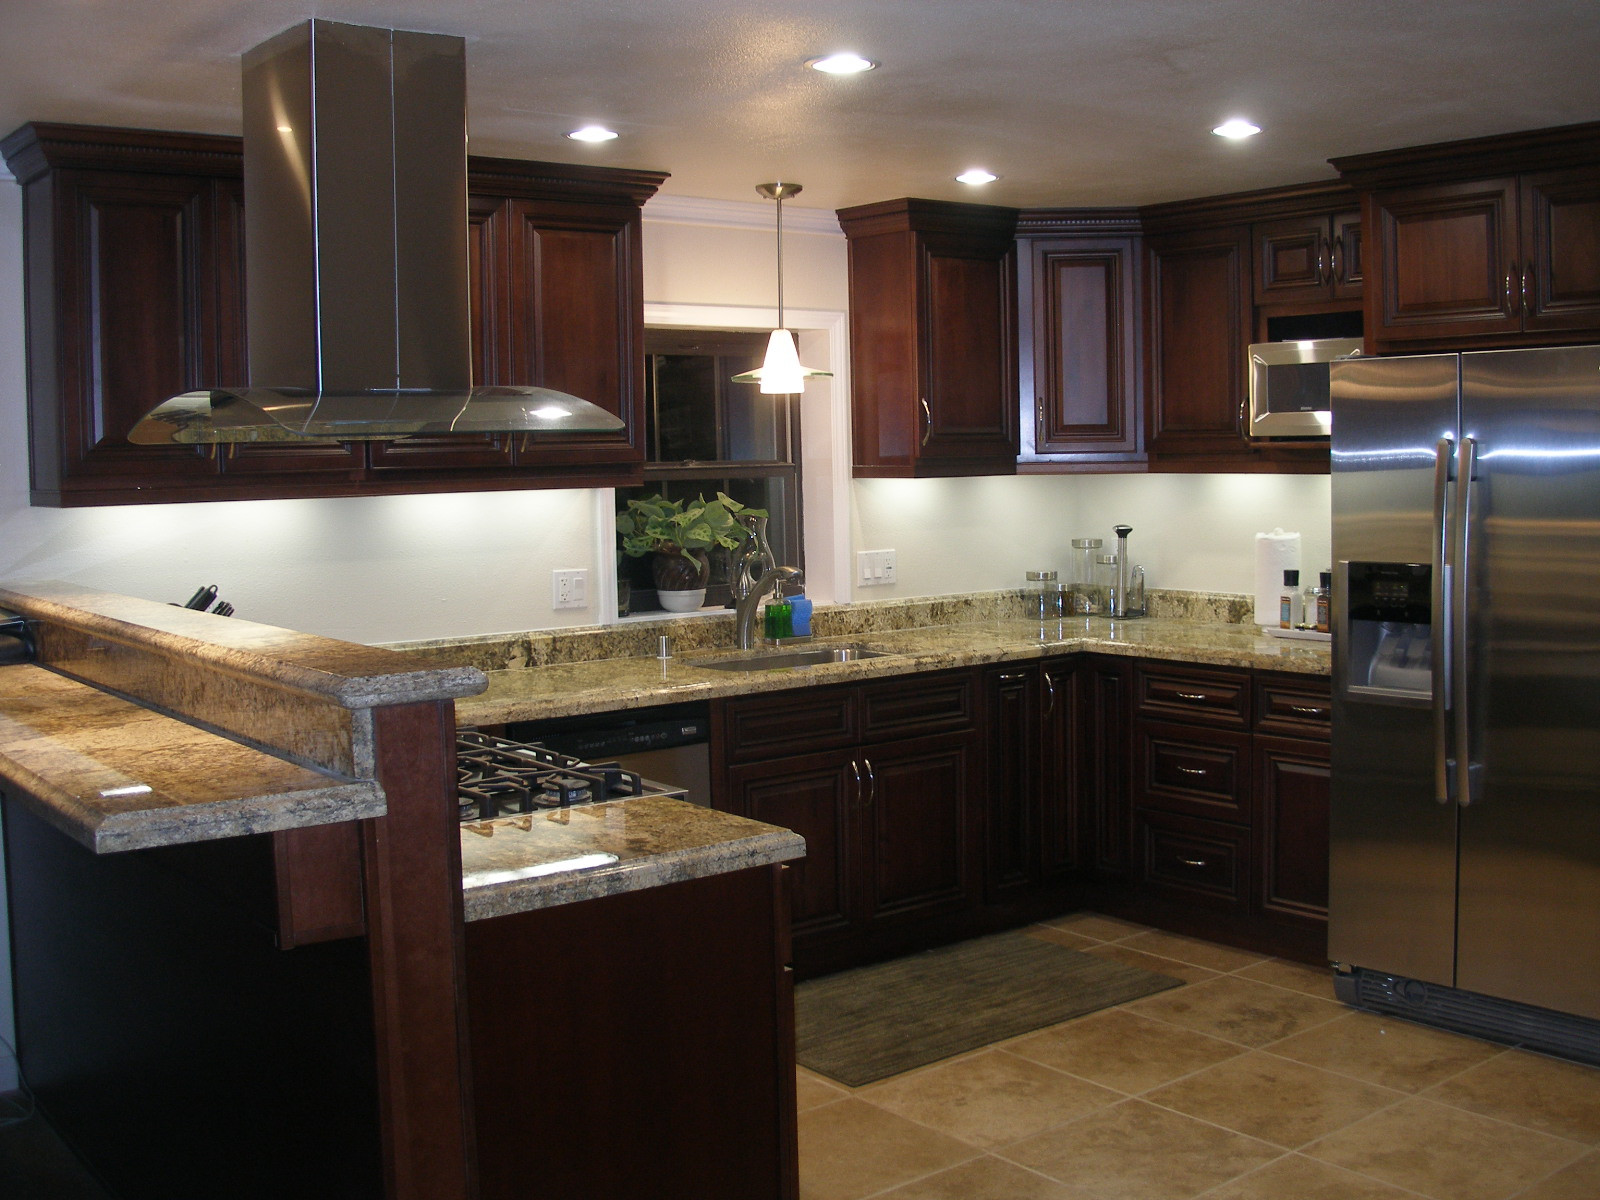 Http Bayeasyconstruction Com Kitchen Remodel